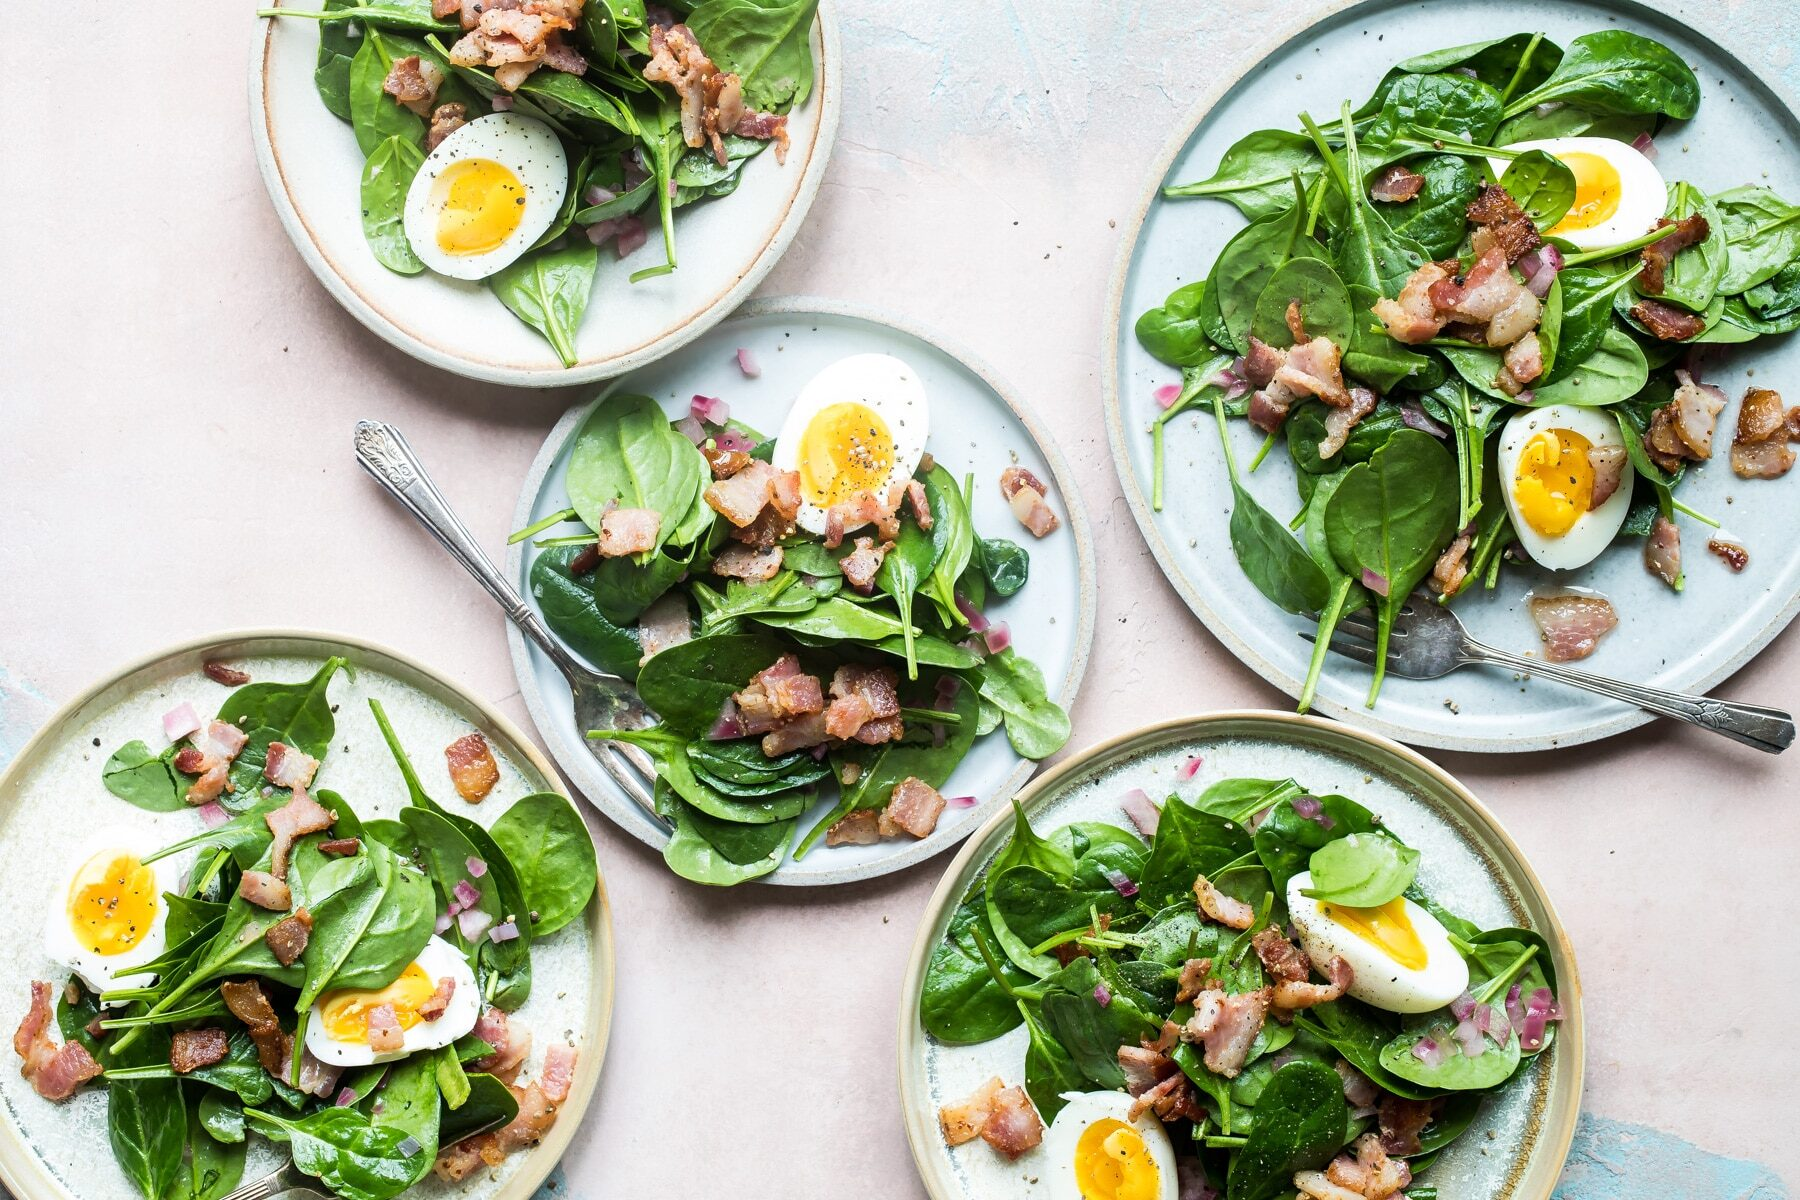 Hot bacon dressing on spinach salad with hard-boiled eggs.